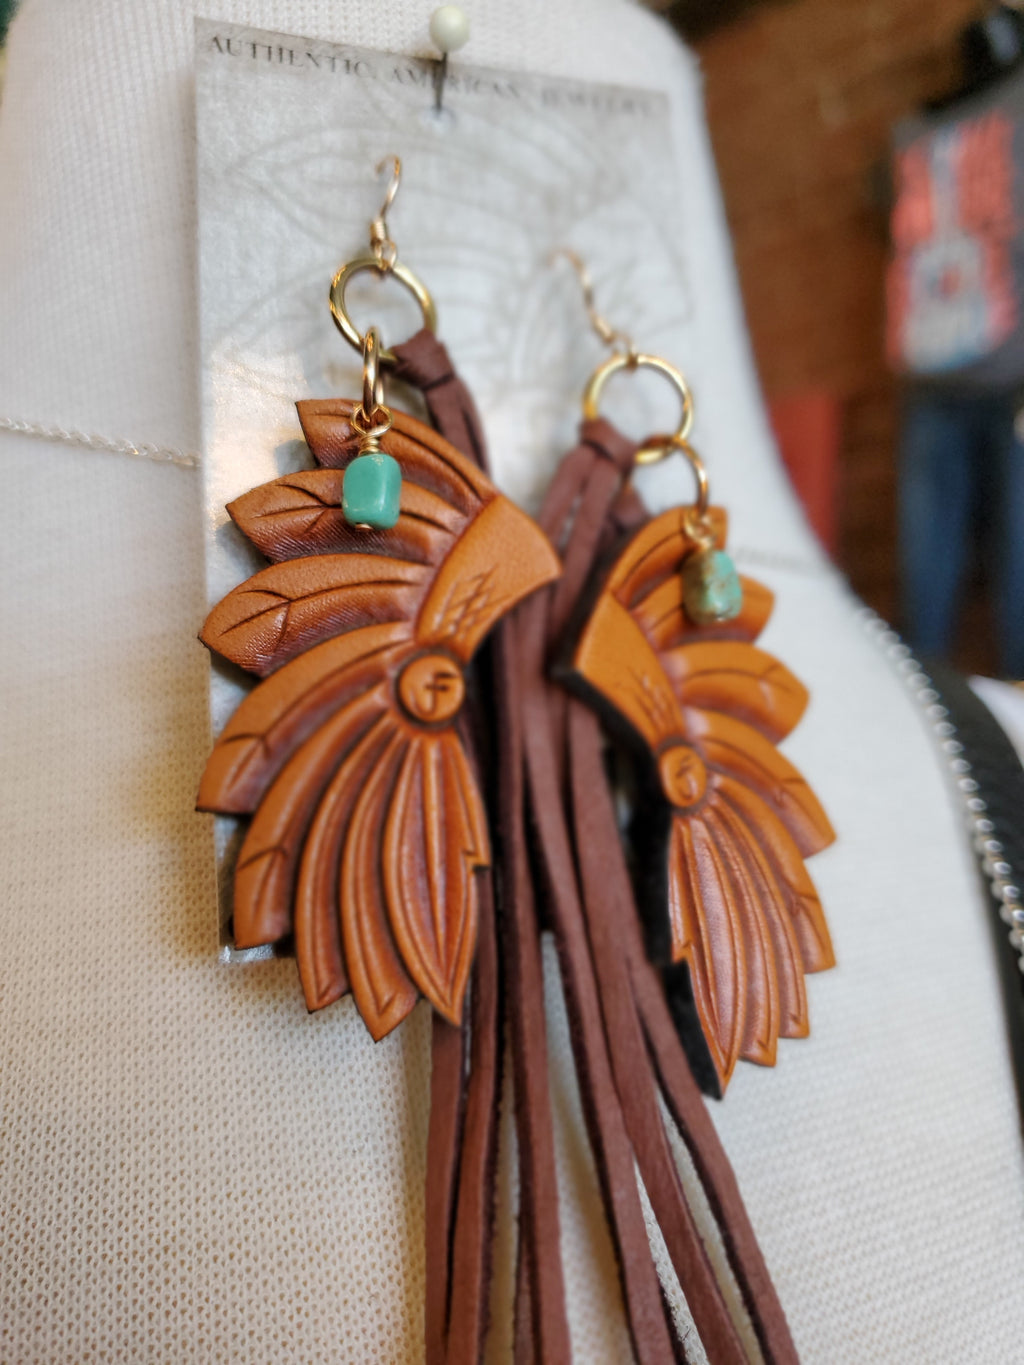 Leather Headress Earrings w/ Tassels